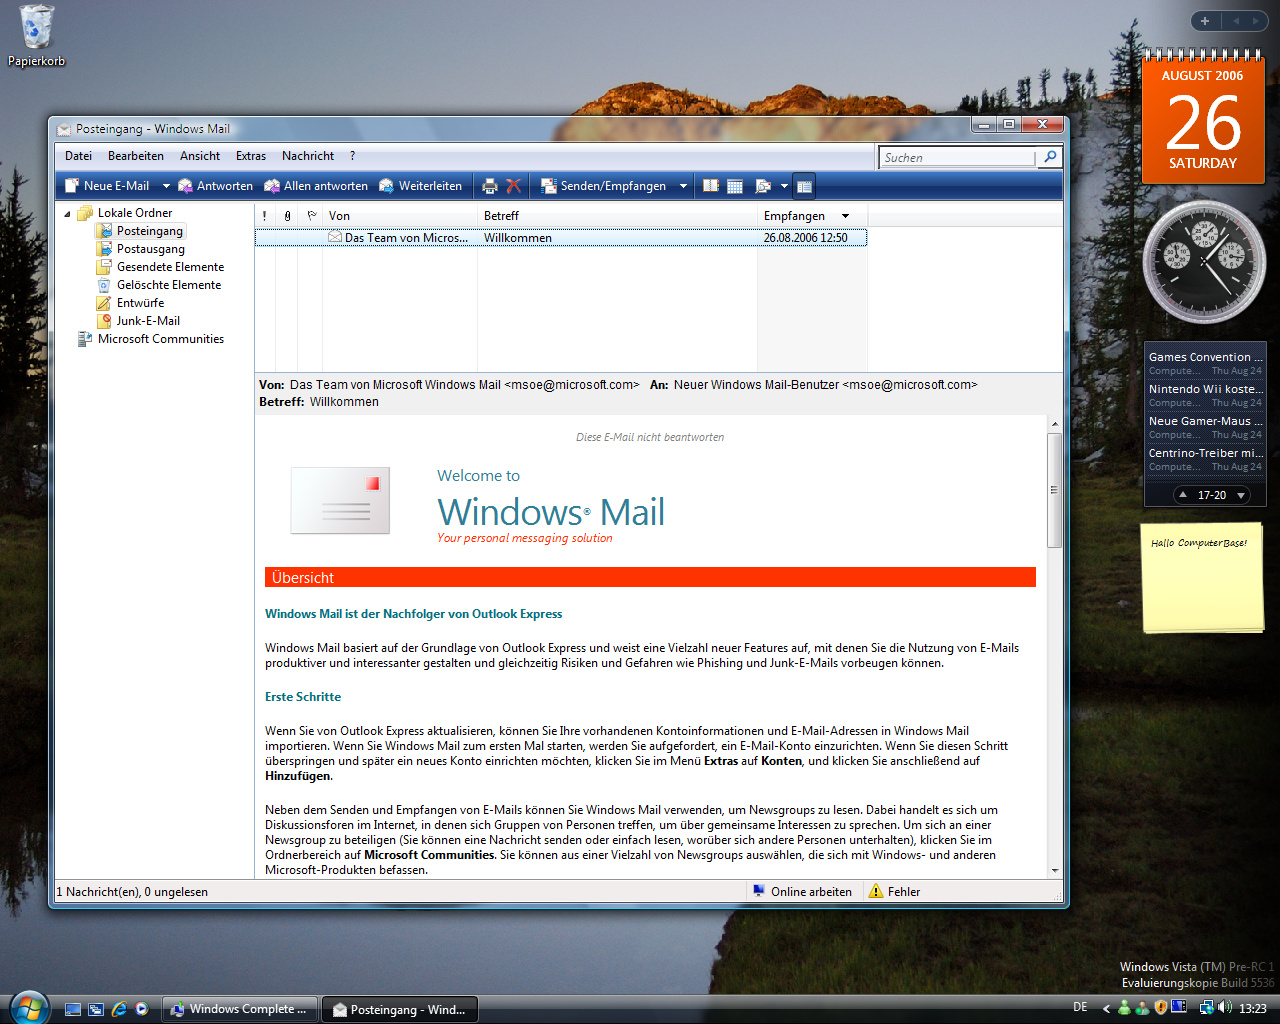 Windows Vista Build 5536 - Mail